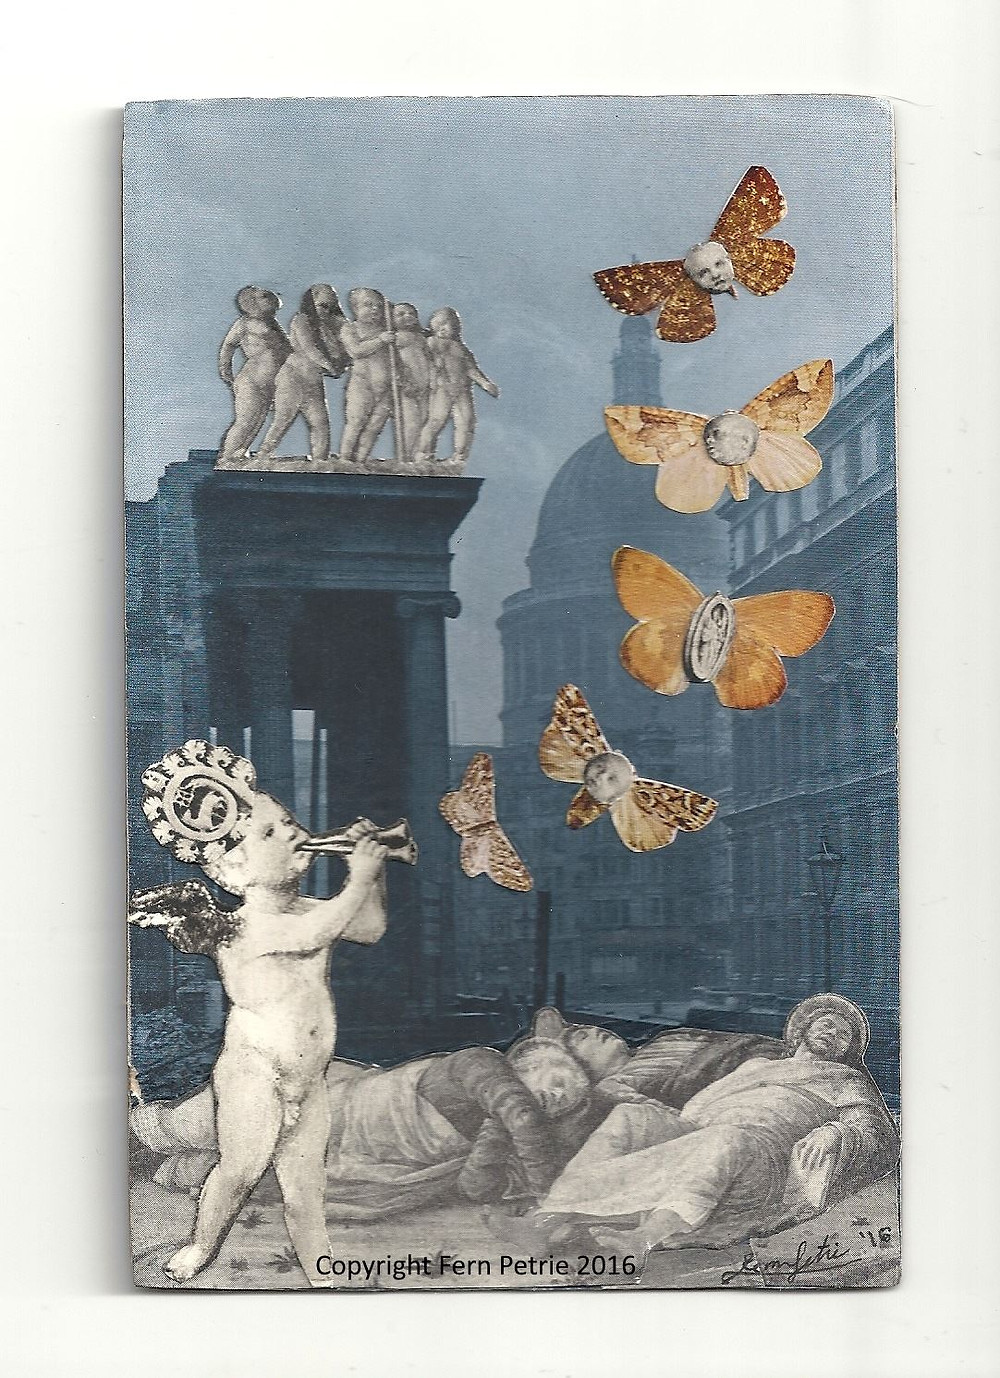 Stolen On The Wings Of A Dream, Collage, 16.5 x  10.7 cm, 2016.